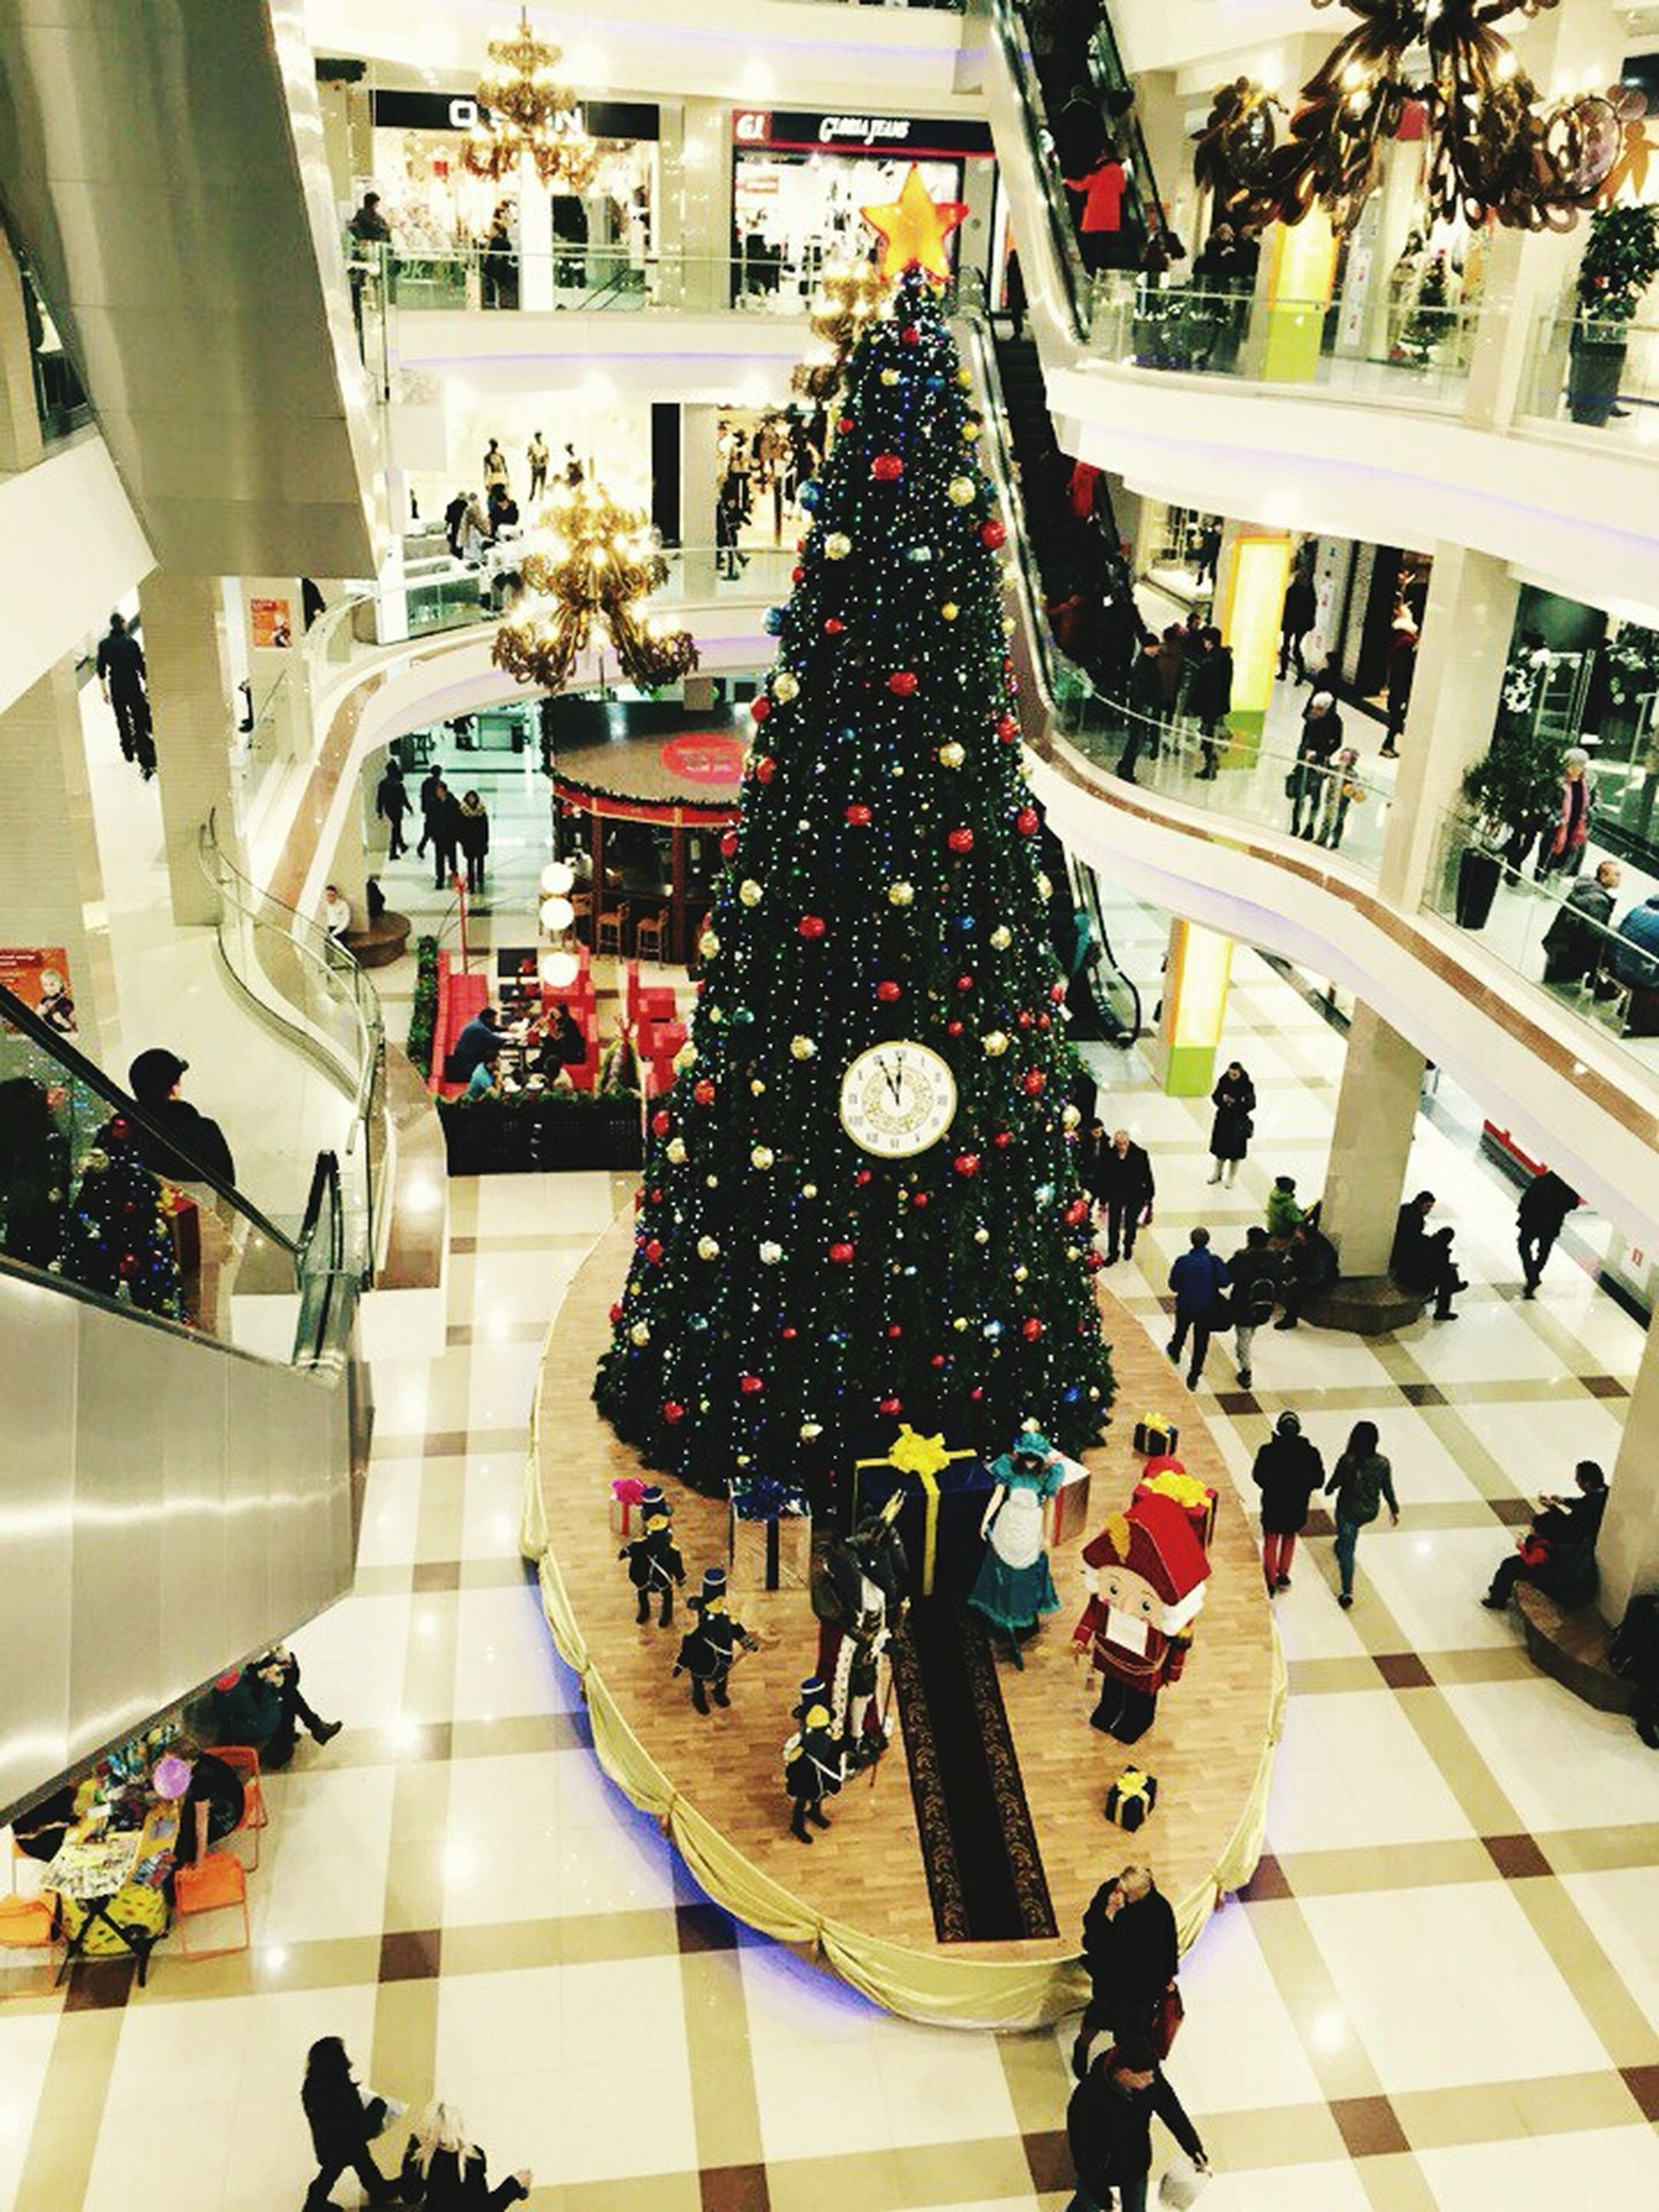 large group of people, shopping mall, escalator, christmas, store, real people, illuminated, christmas tree, indoors, people, adults only, day